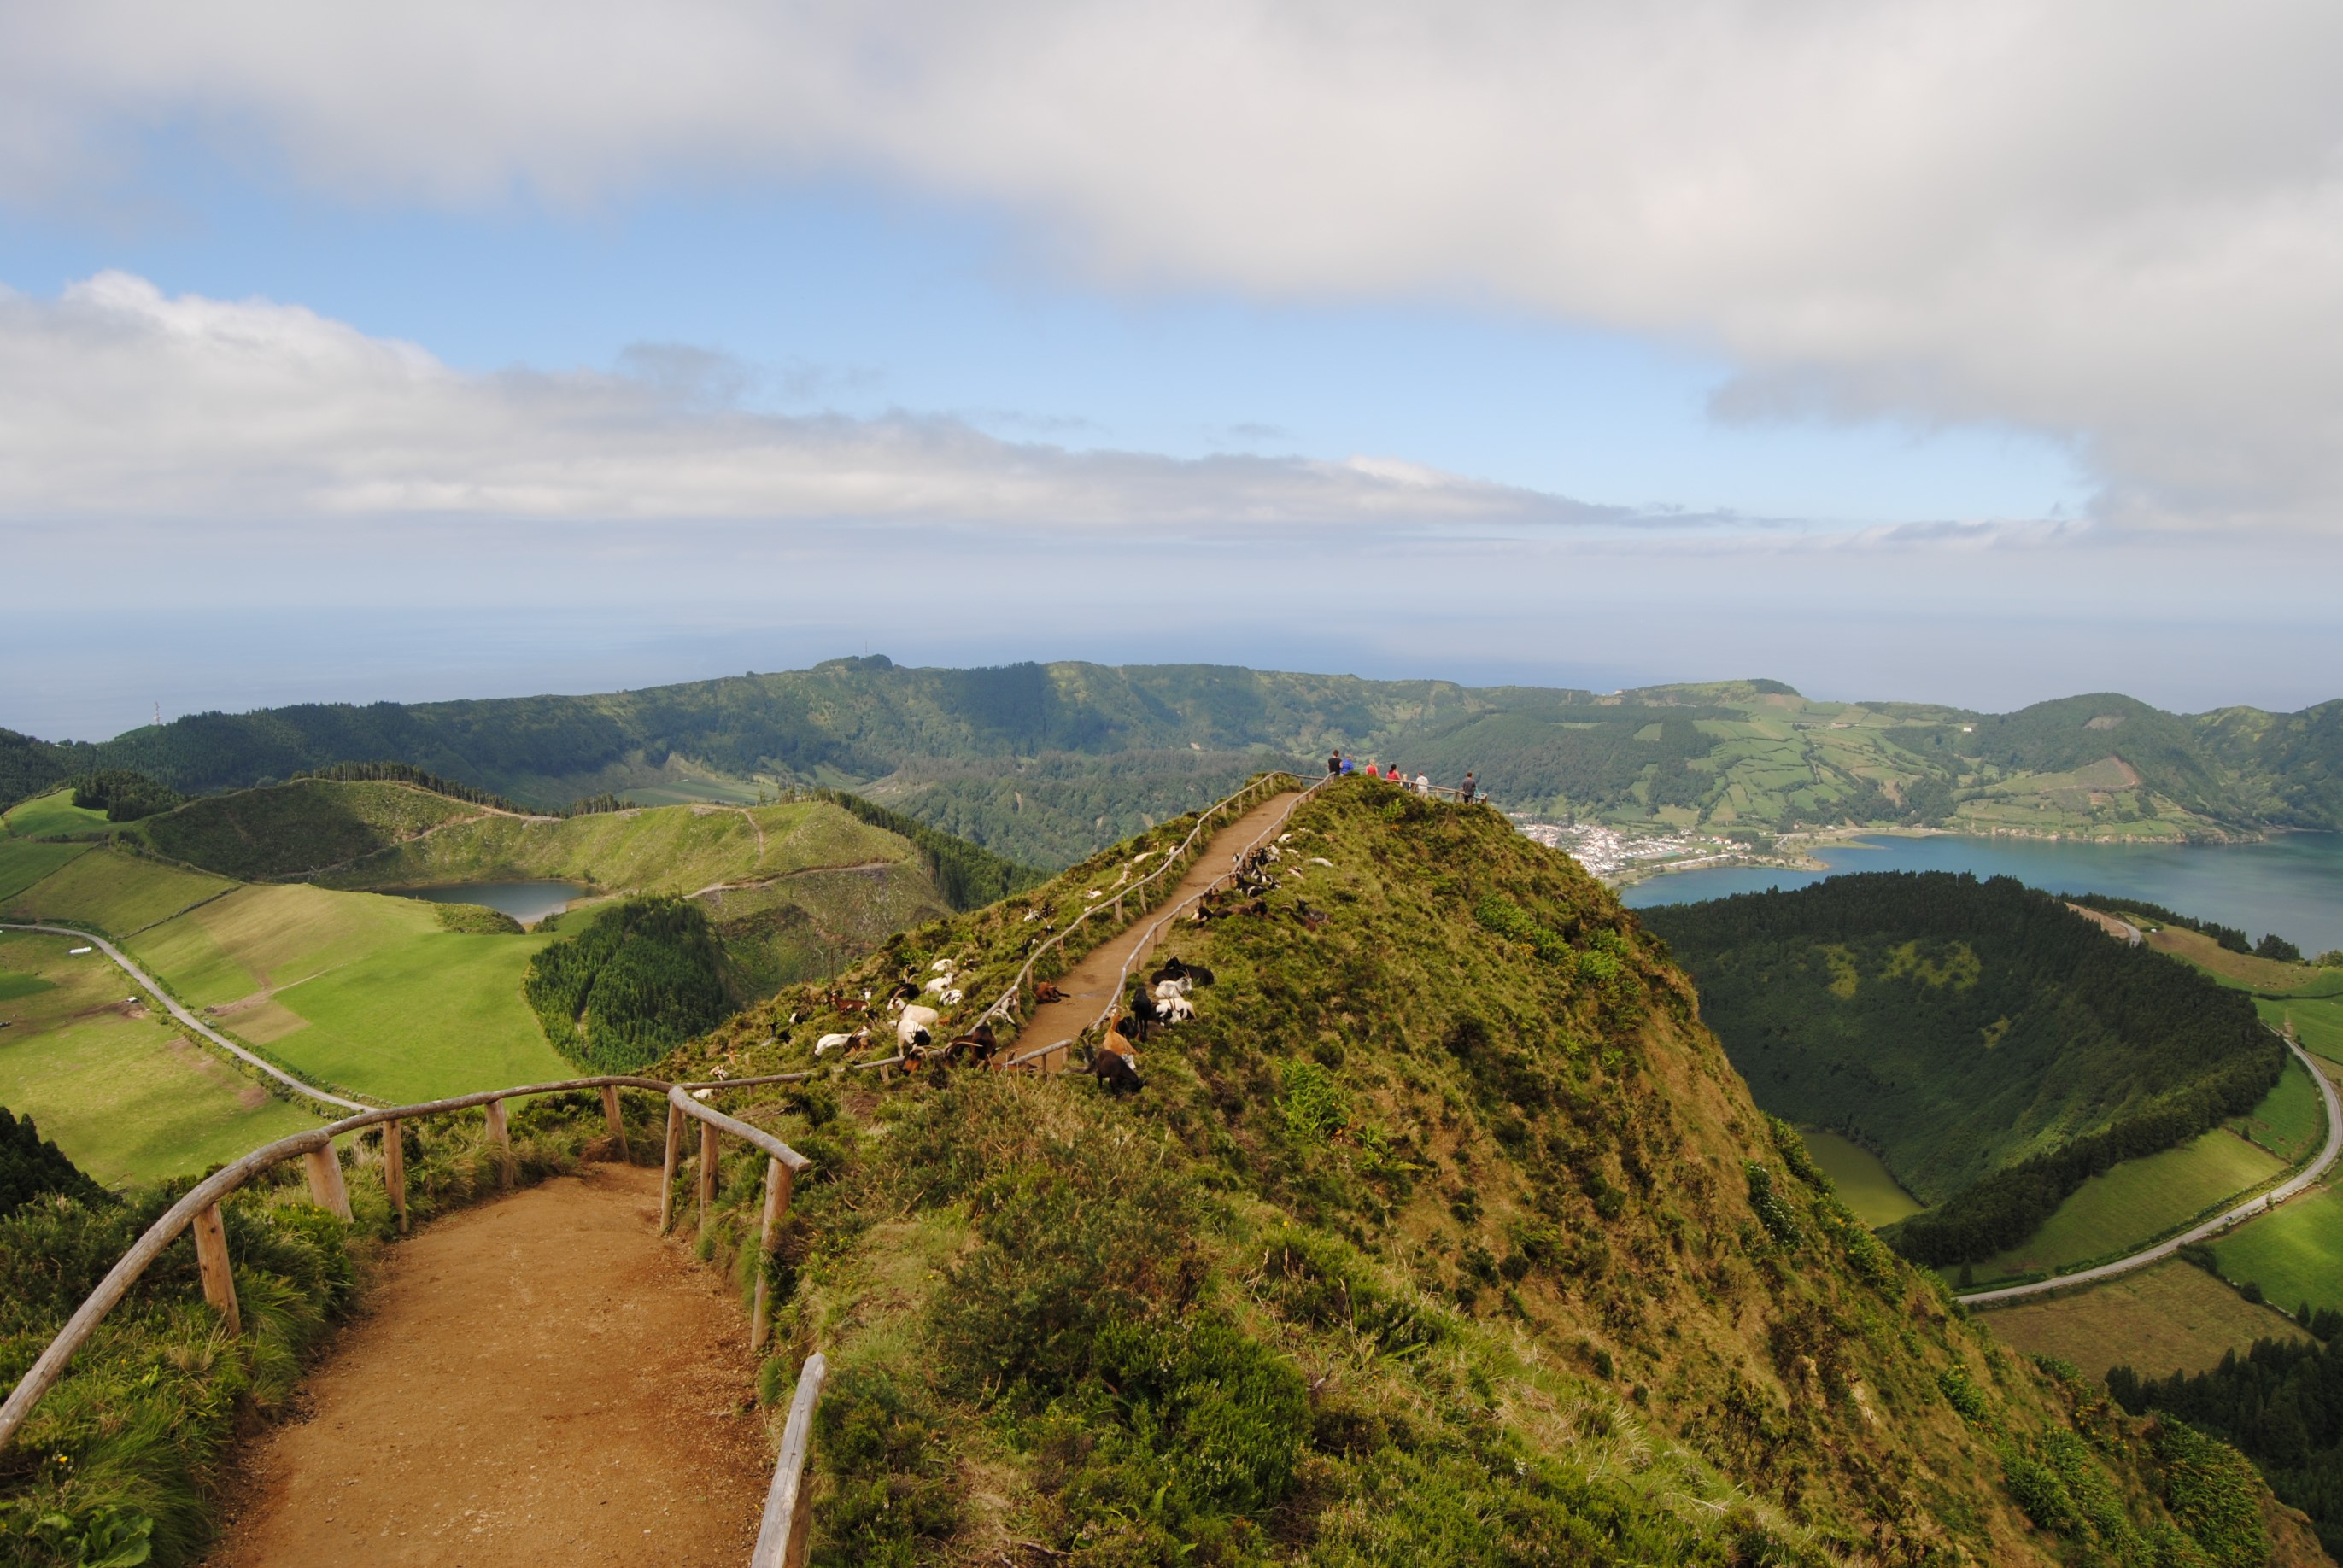 Private Tour # 7 - Half day to Sete Cidades Lakes